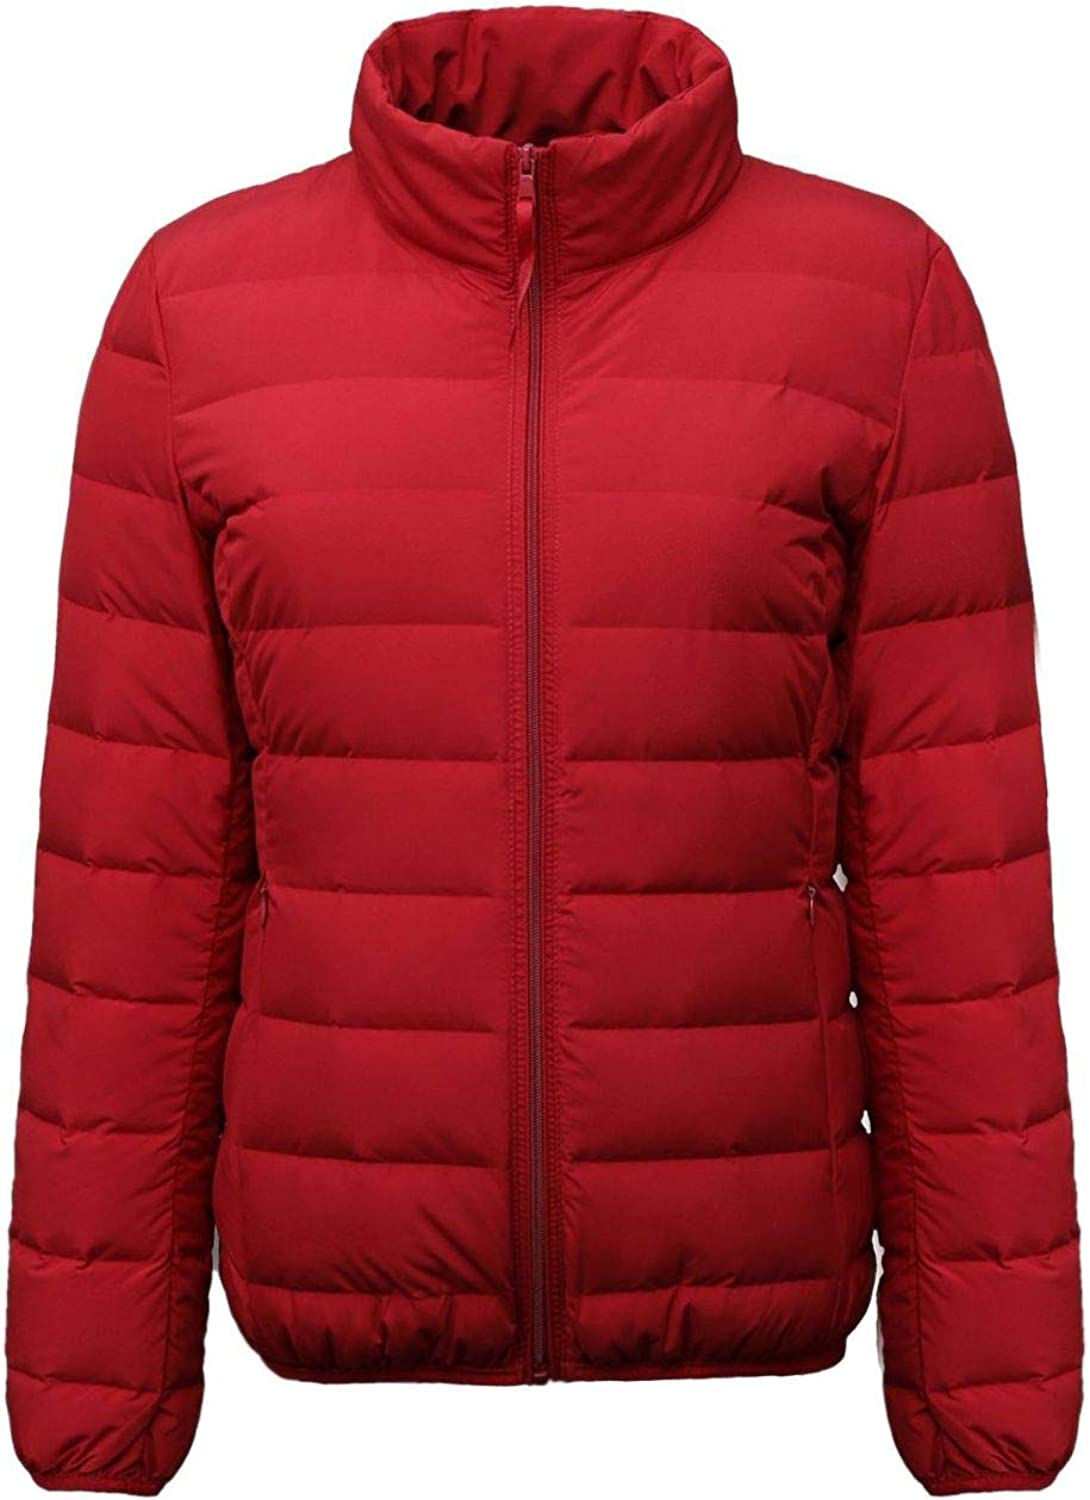 Women's Padding Down Jacket,Hooded Quilted Coat Lightweight Winter Coat with Pocket